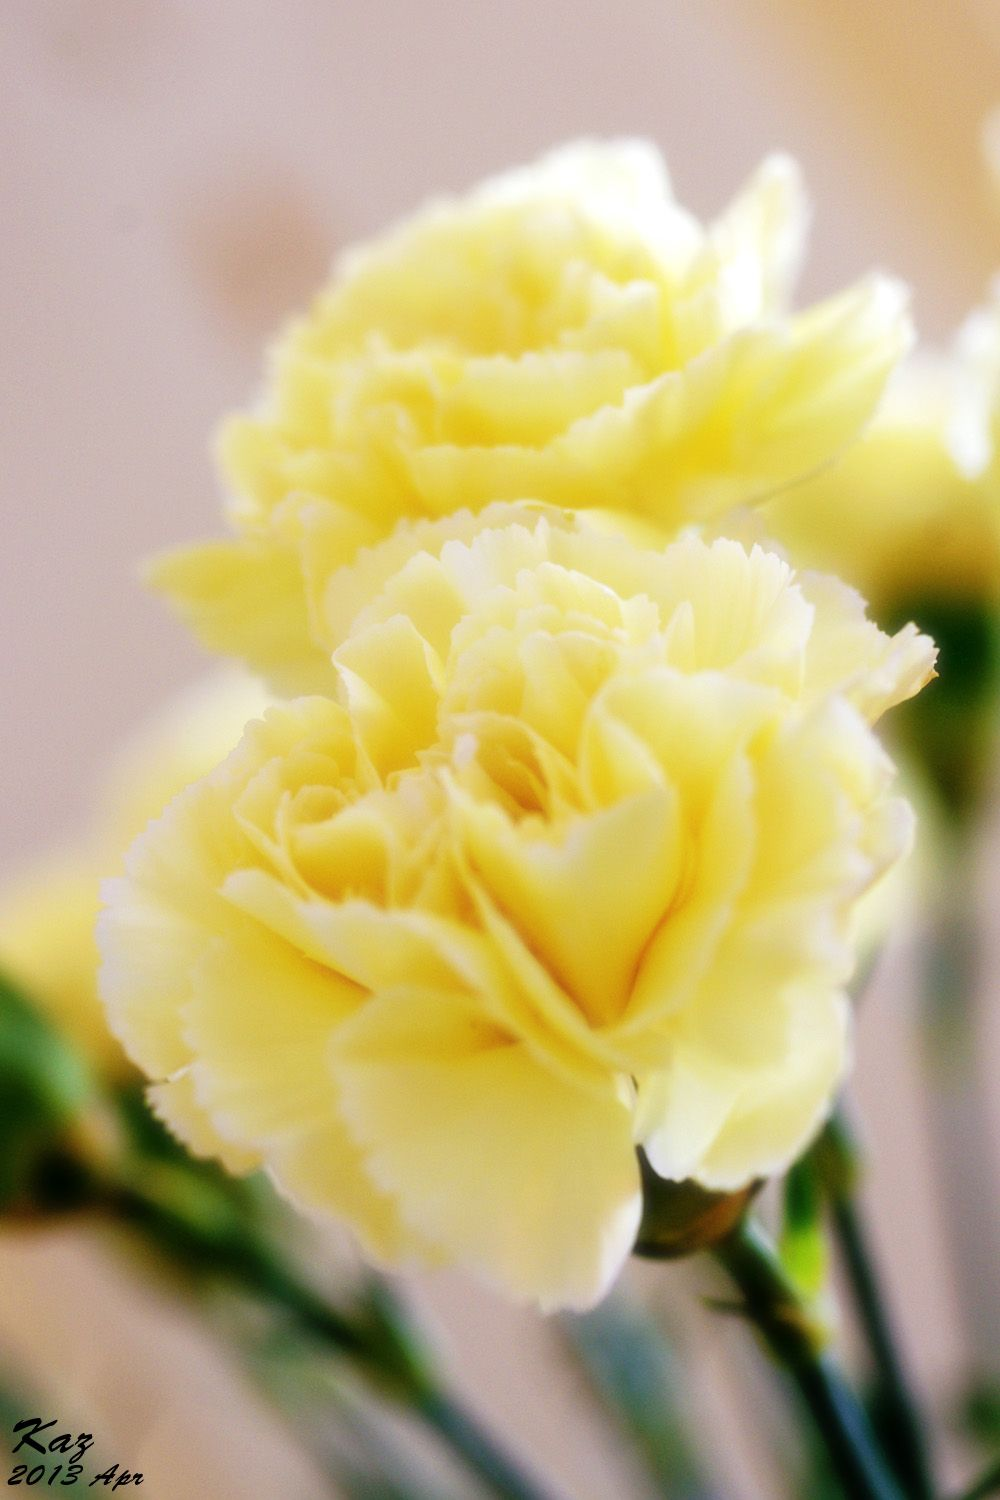 Carnation Yellow Disapointment Rejection What A Sad Message